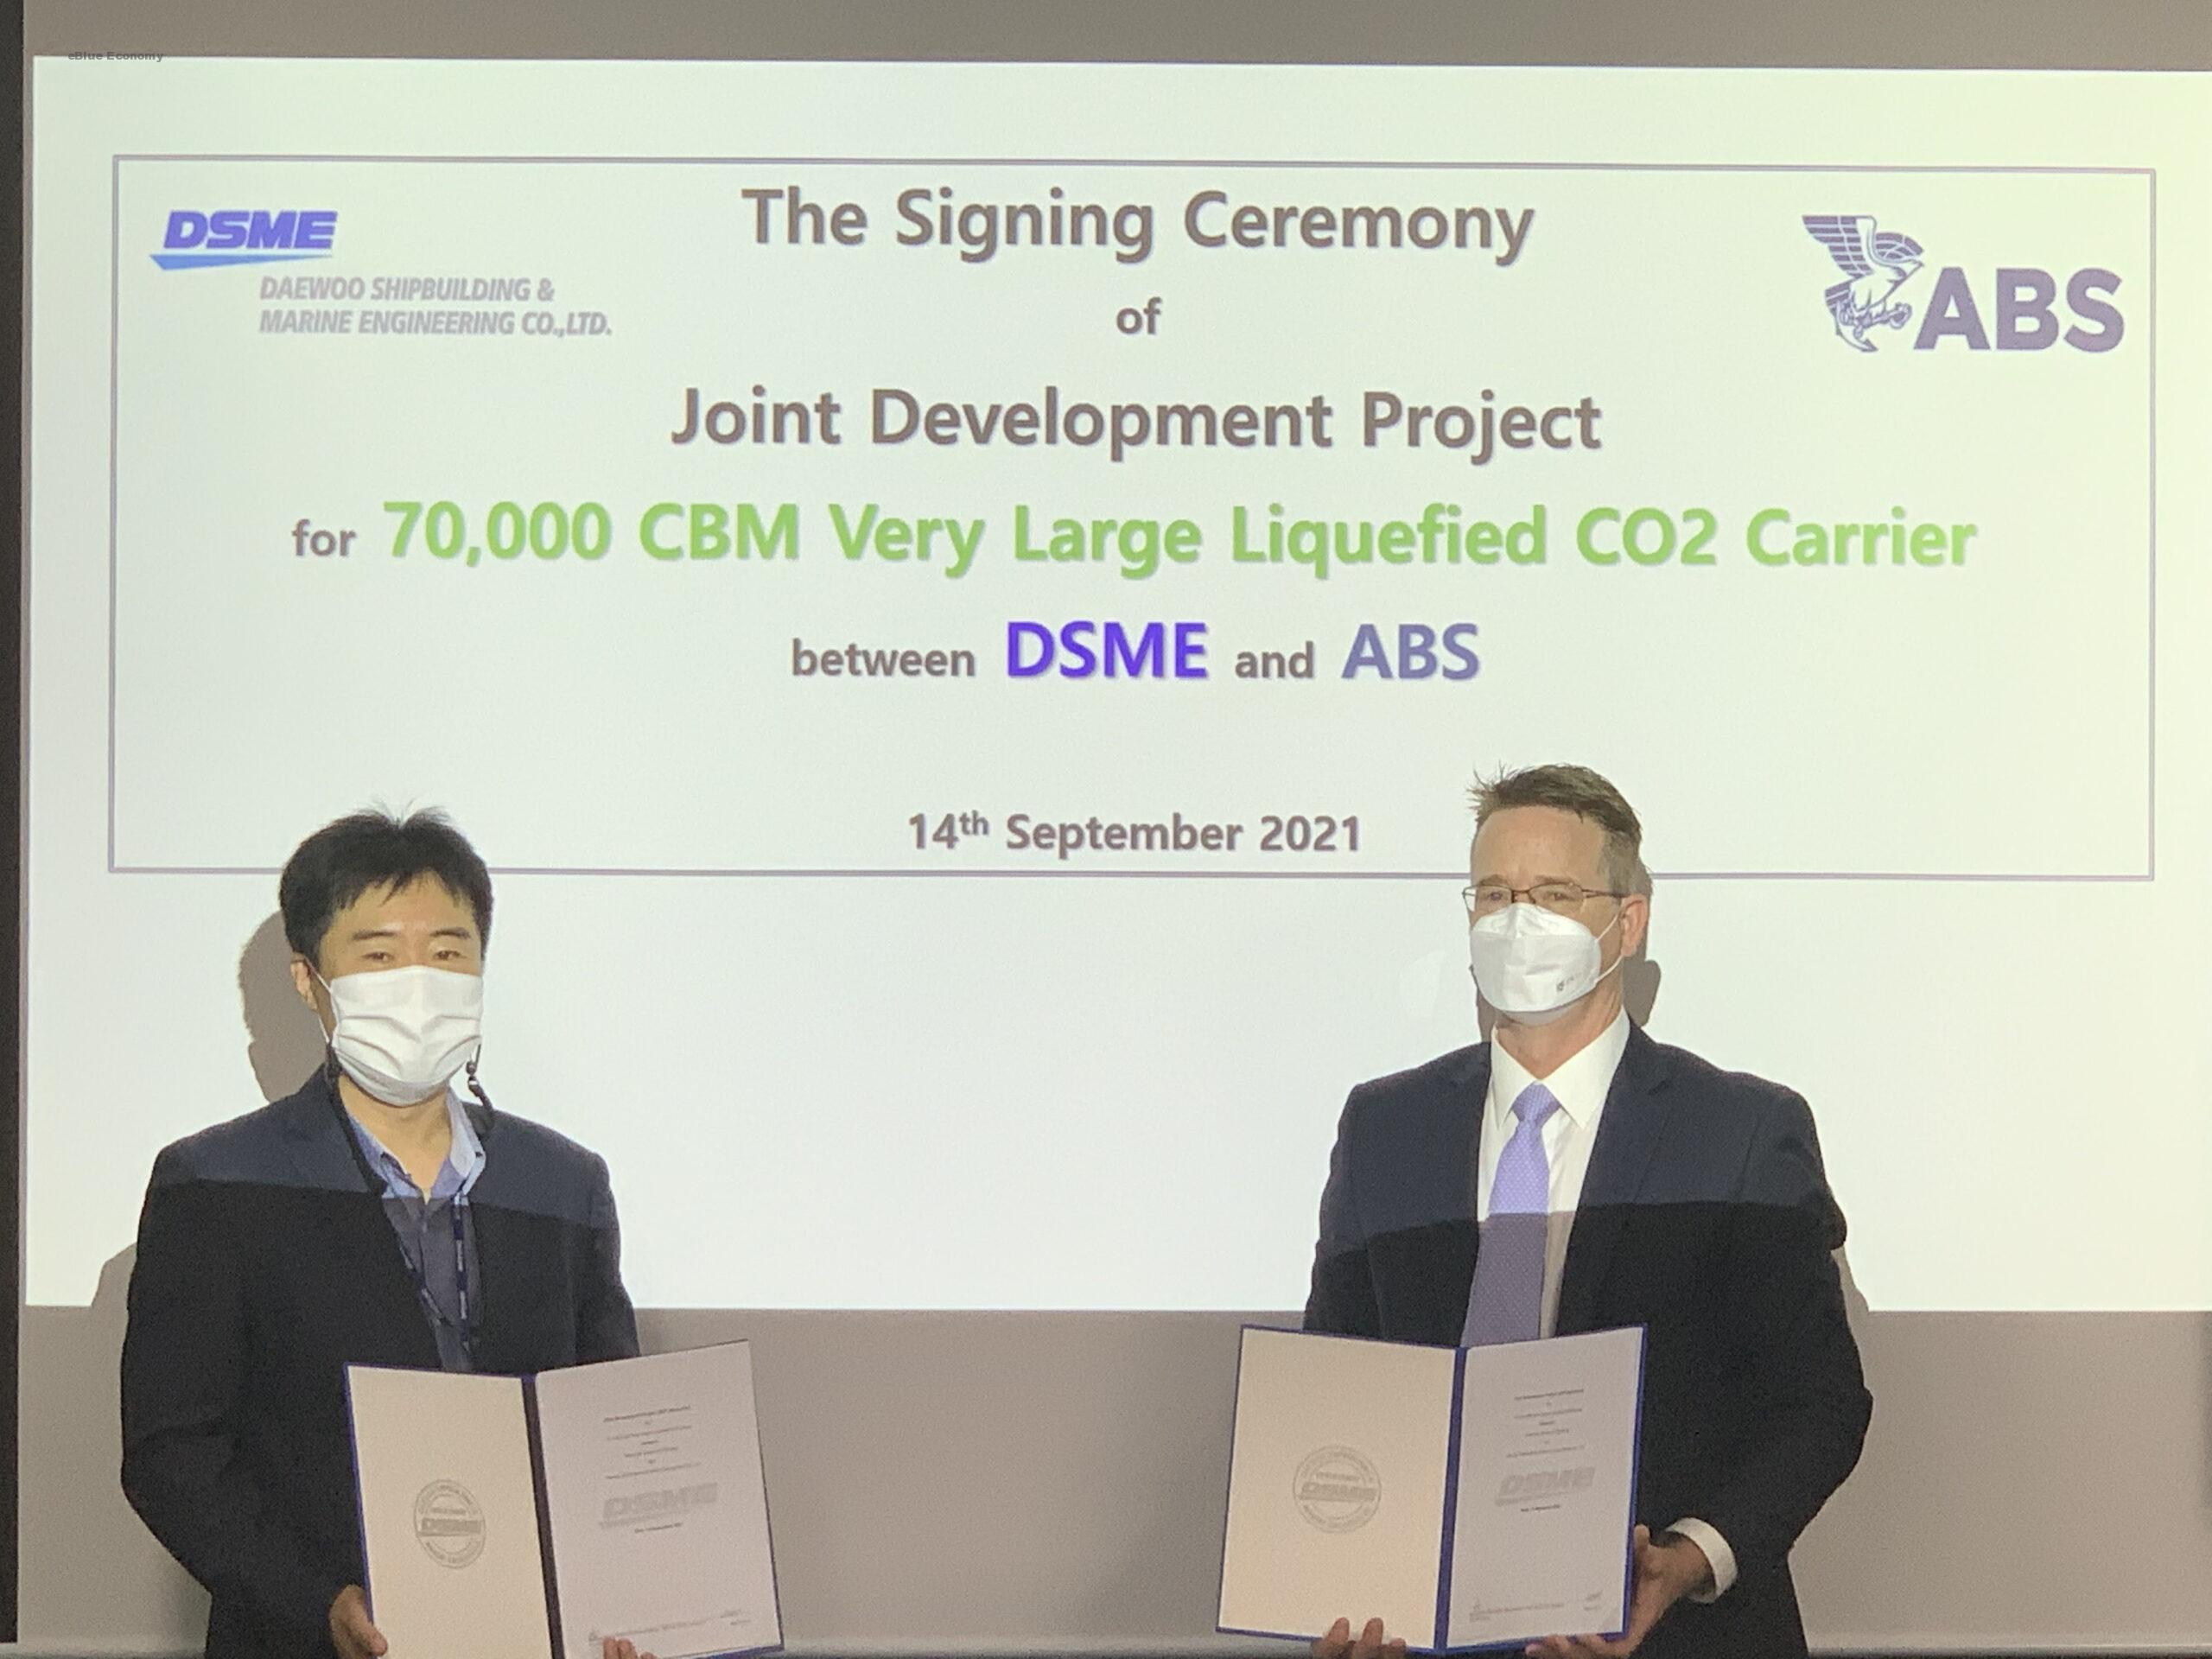 eBlue_economy_ABS and DSME to Develop Very Large Liquefied CO2 Carrier